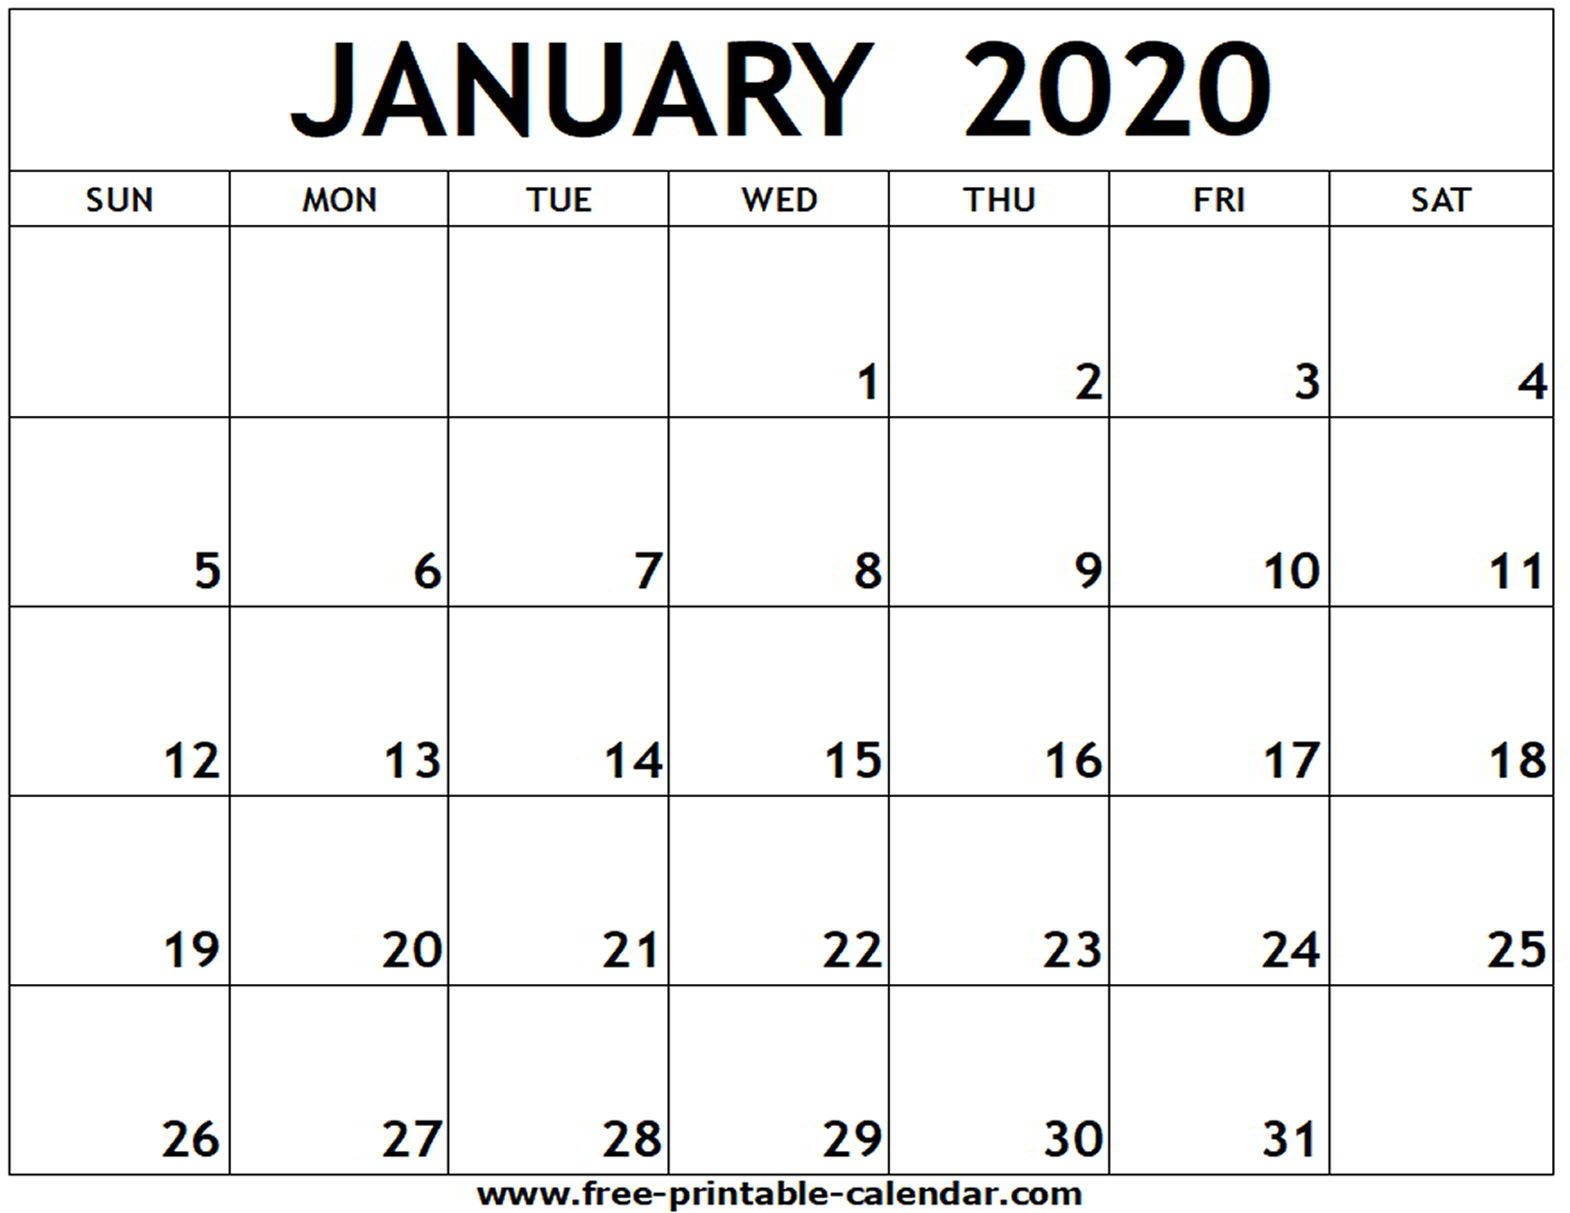 January 2020 Printable Calendar  Freeprintablecalendar throughout Calendars Michel Zbinden 2020